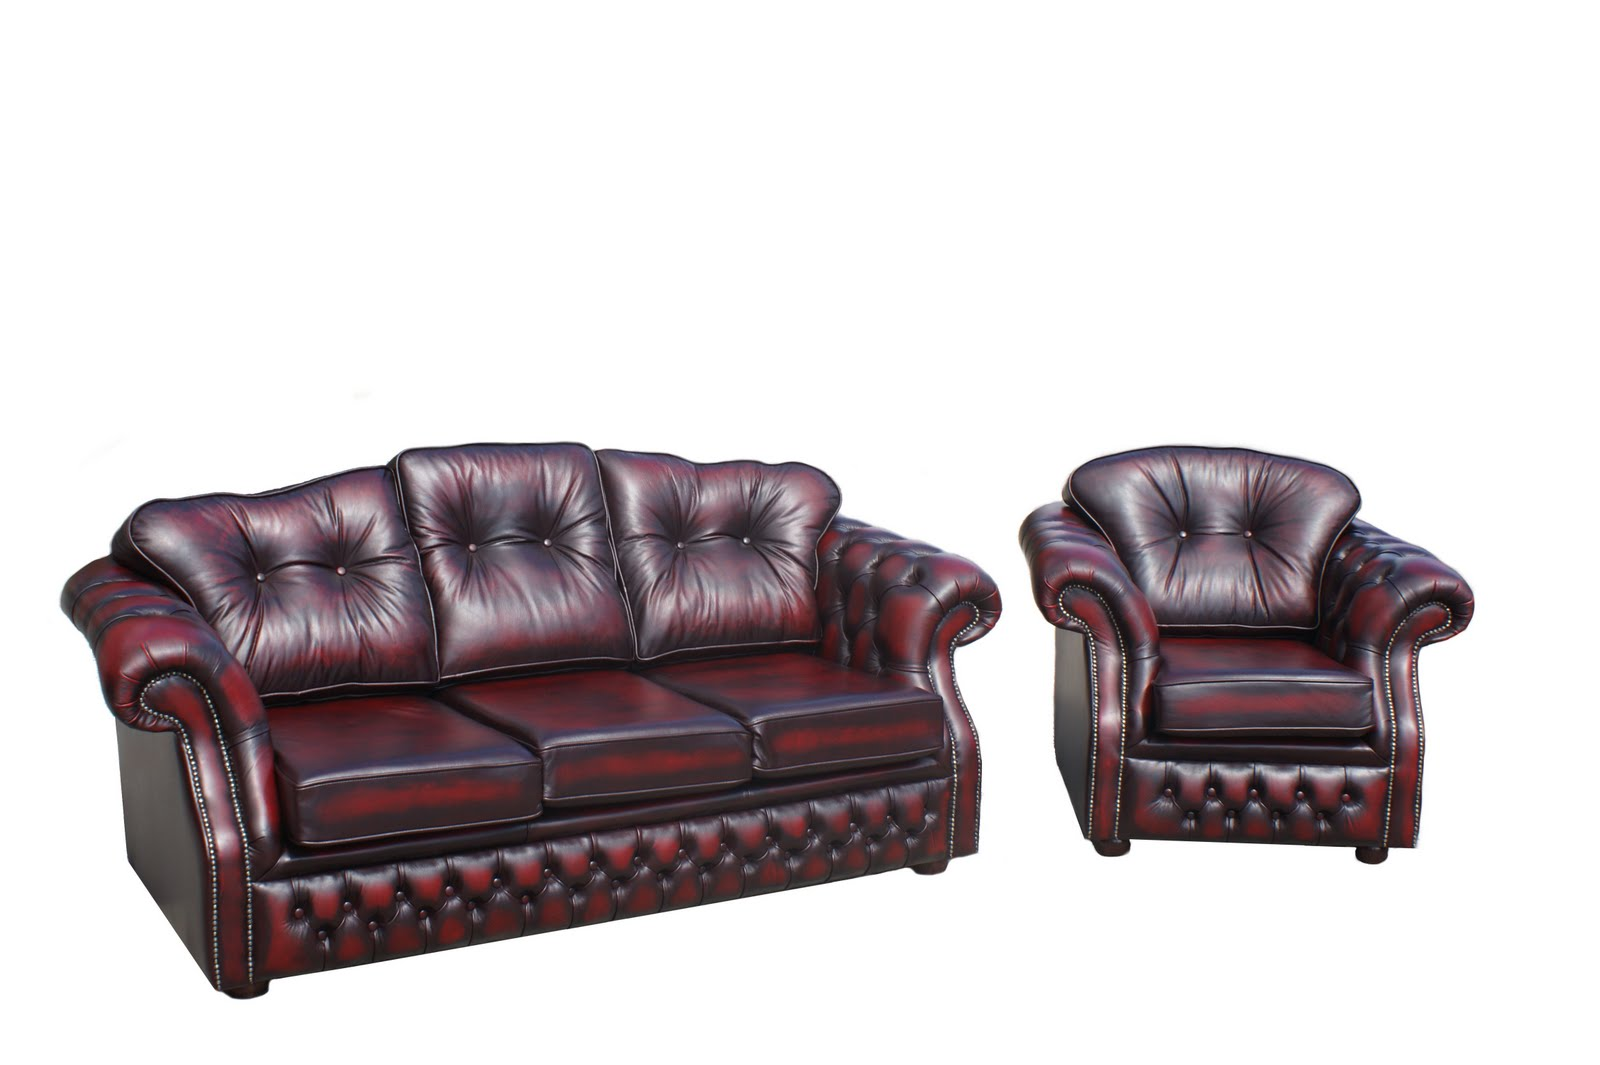 Leather Sofa Manufacturer Malaysia Sofas With Legs Chesterfield 22 Price